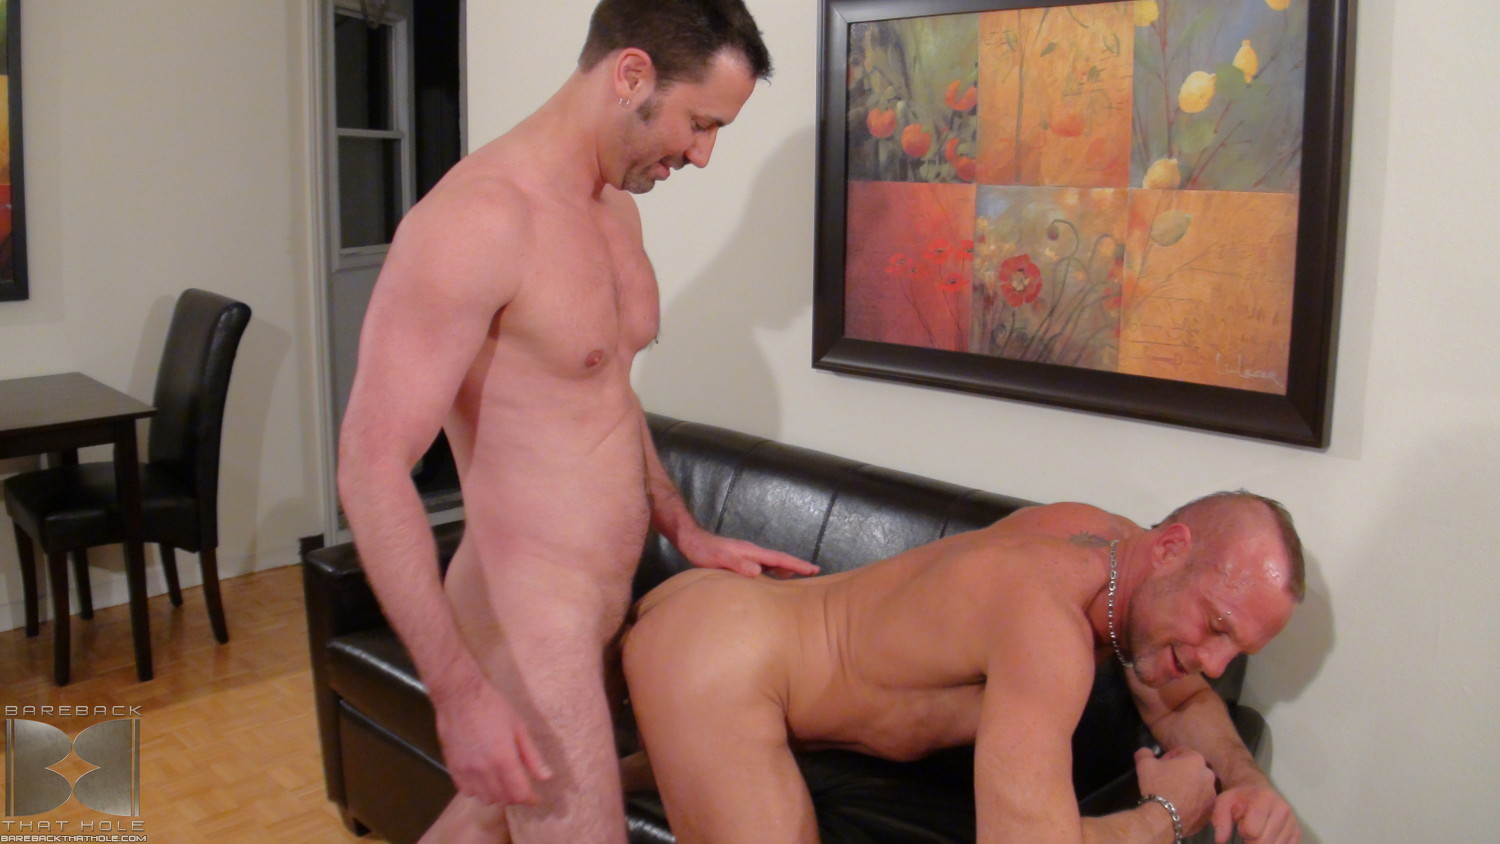 17_44 Bareback That Hole: Anthony Todd and Chad Brock